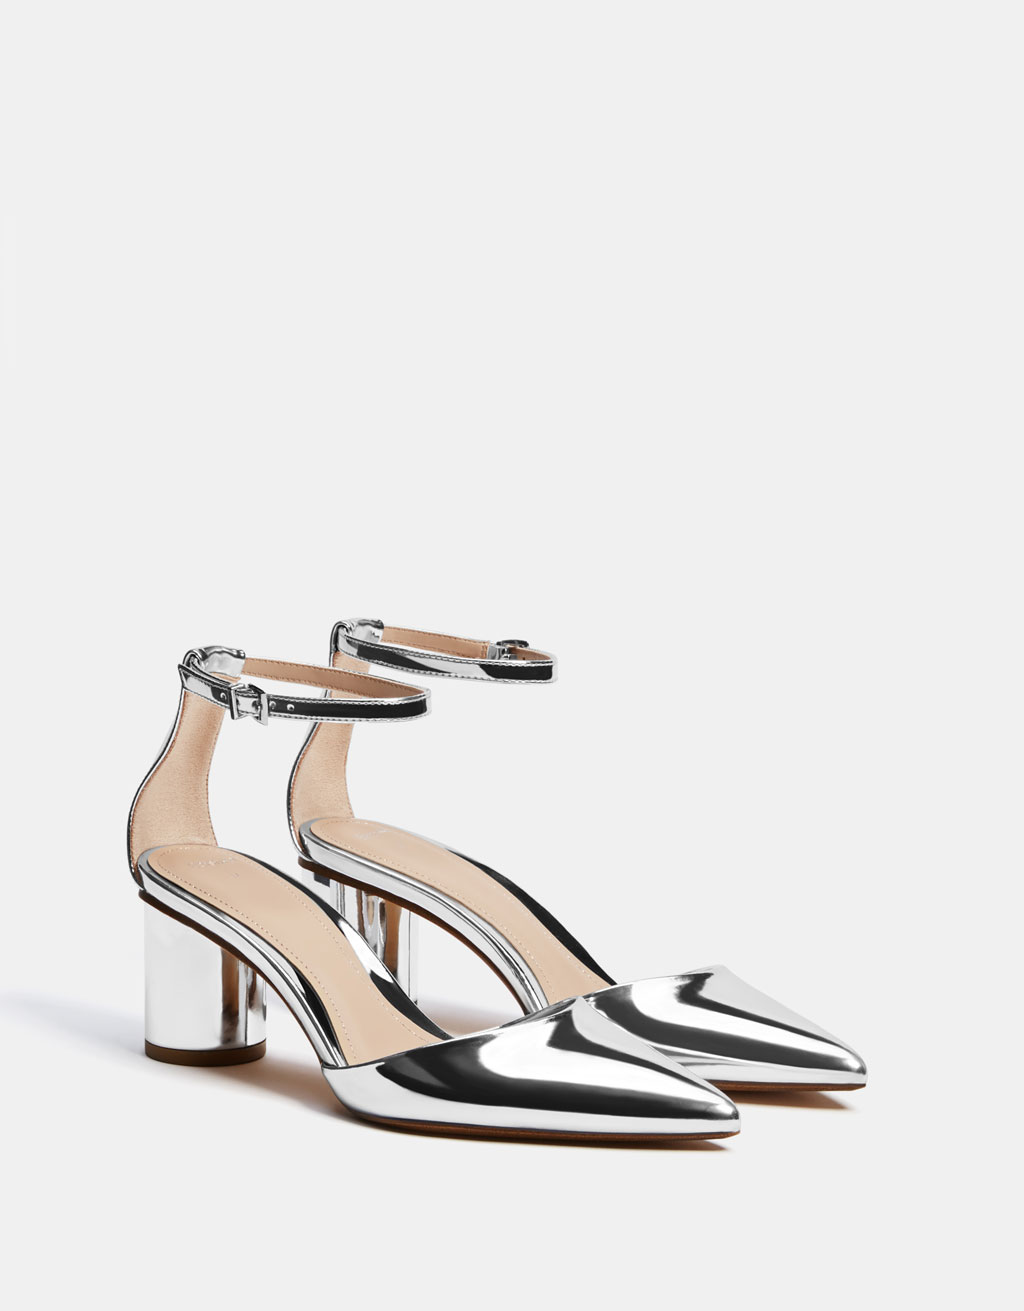 Metallic mid-heel shoes